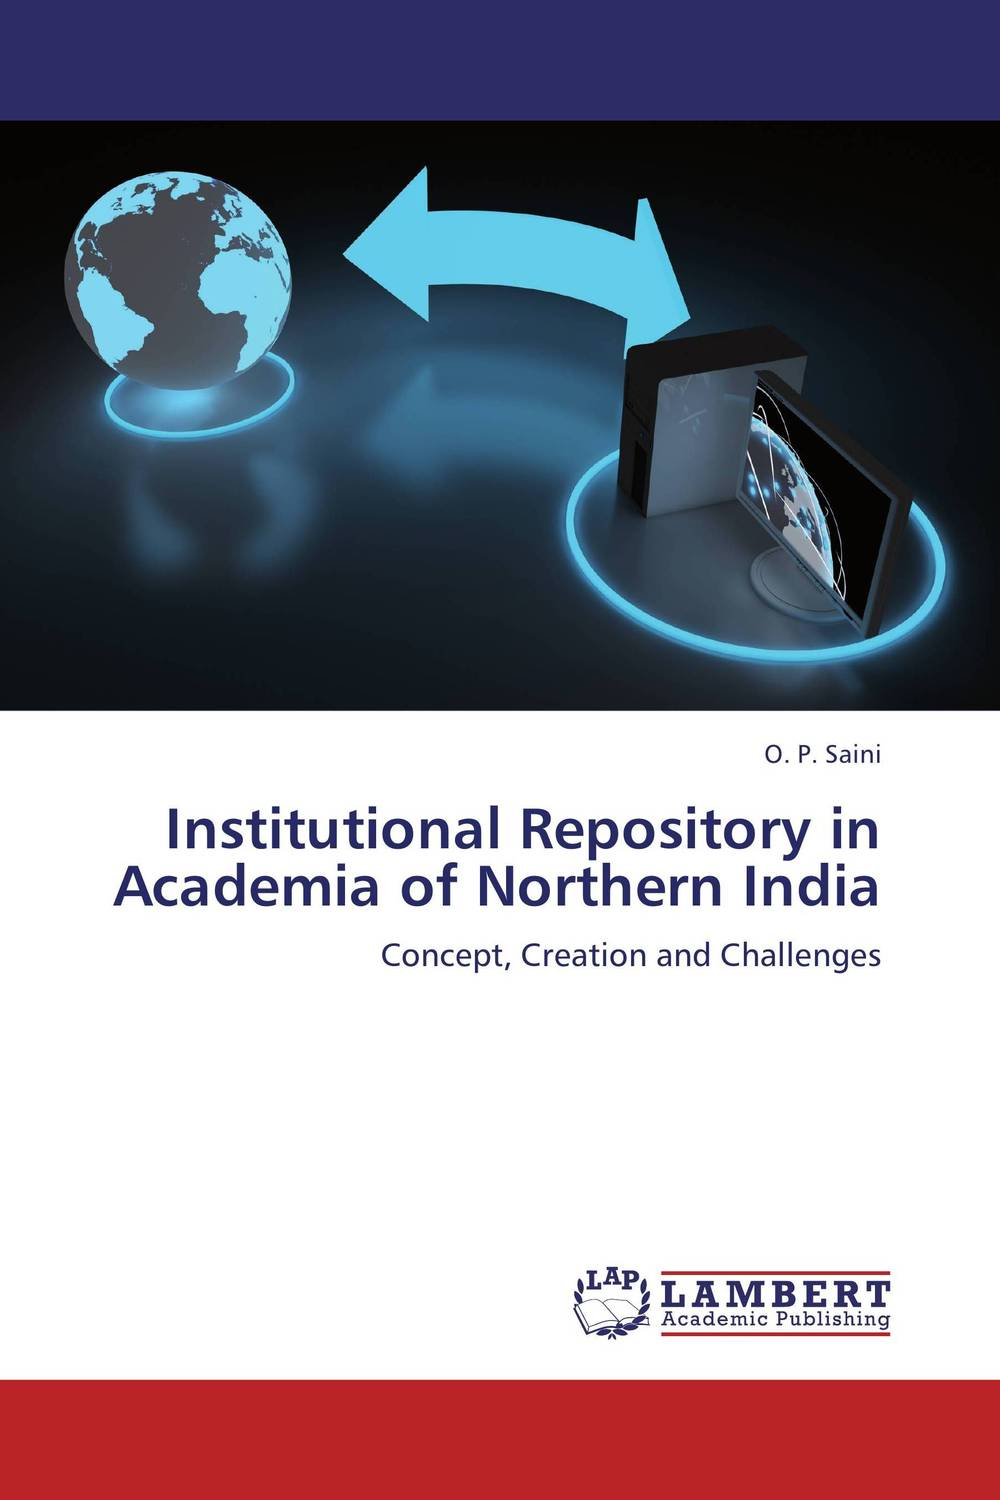 Institutional Repository in Academia of Northern India jaynal ud din ahmed and mohd abdul rashid institutional finance for micro and small entreprises in india